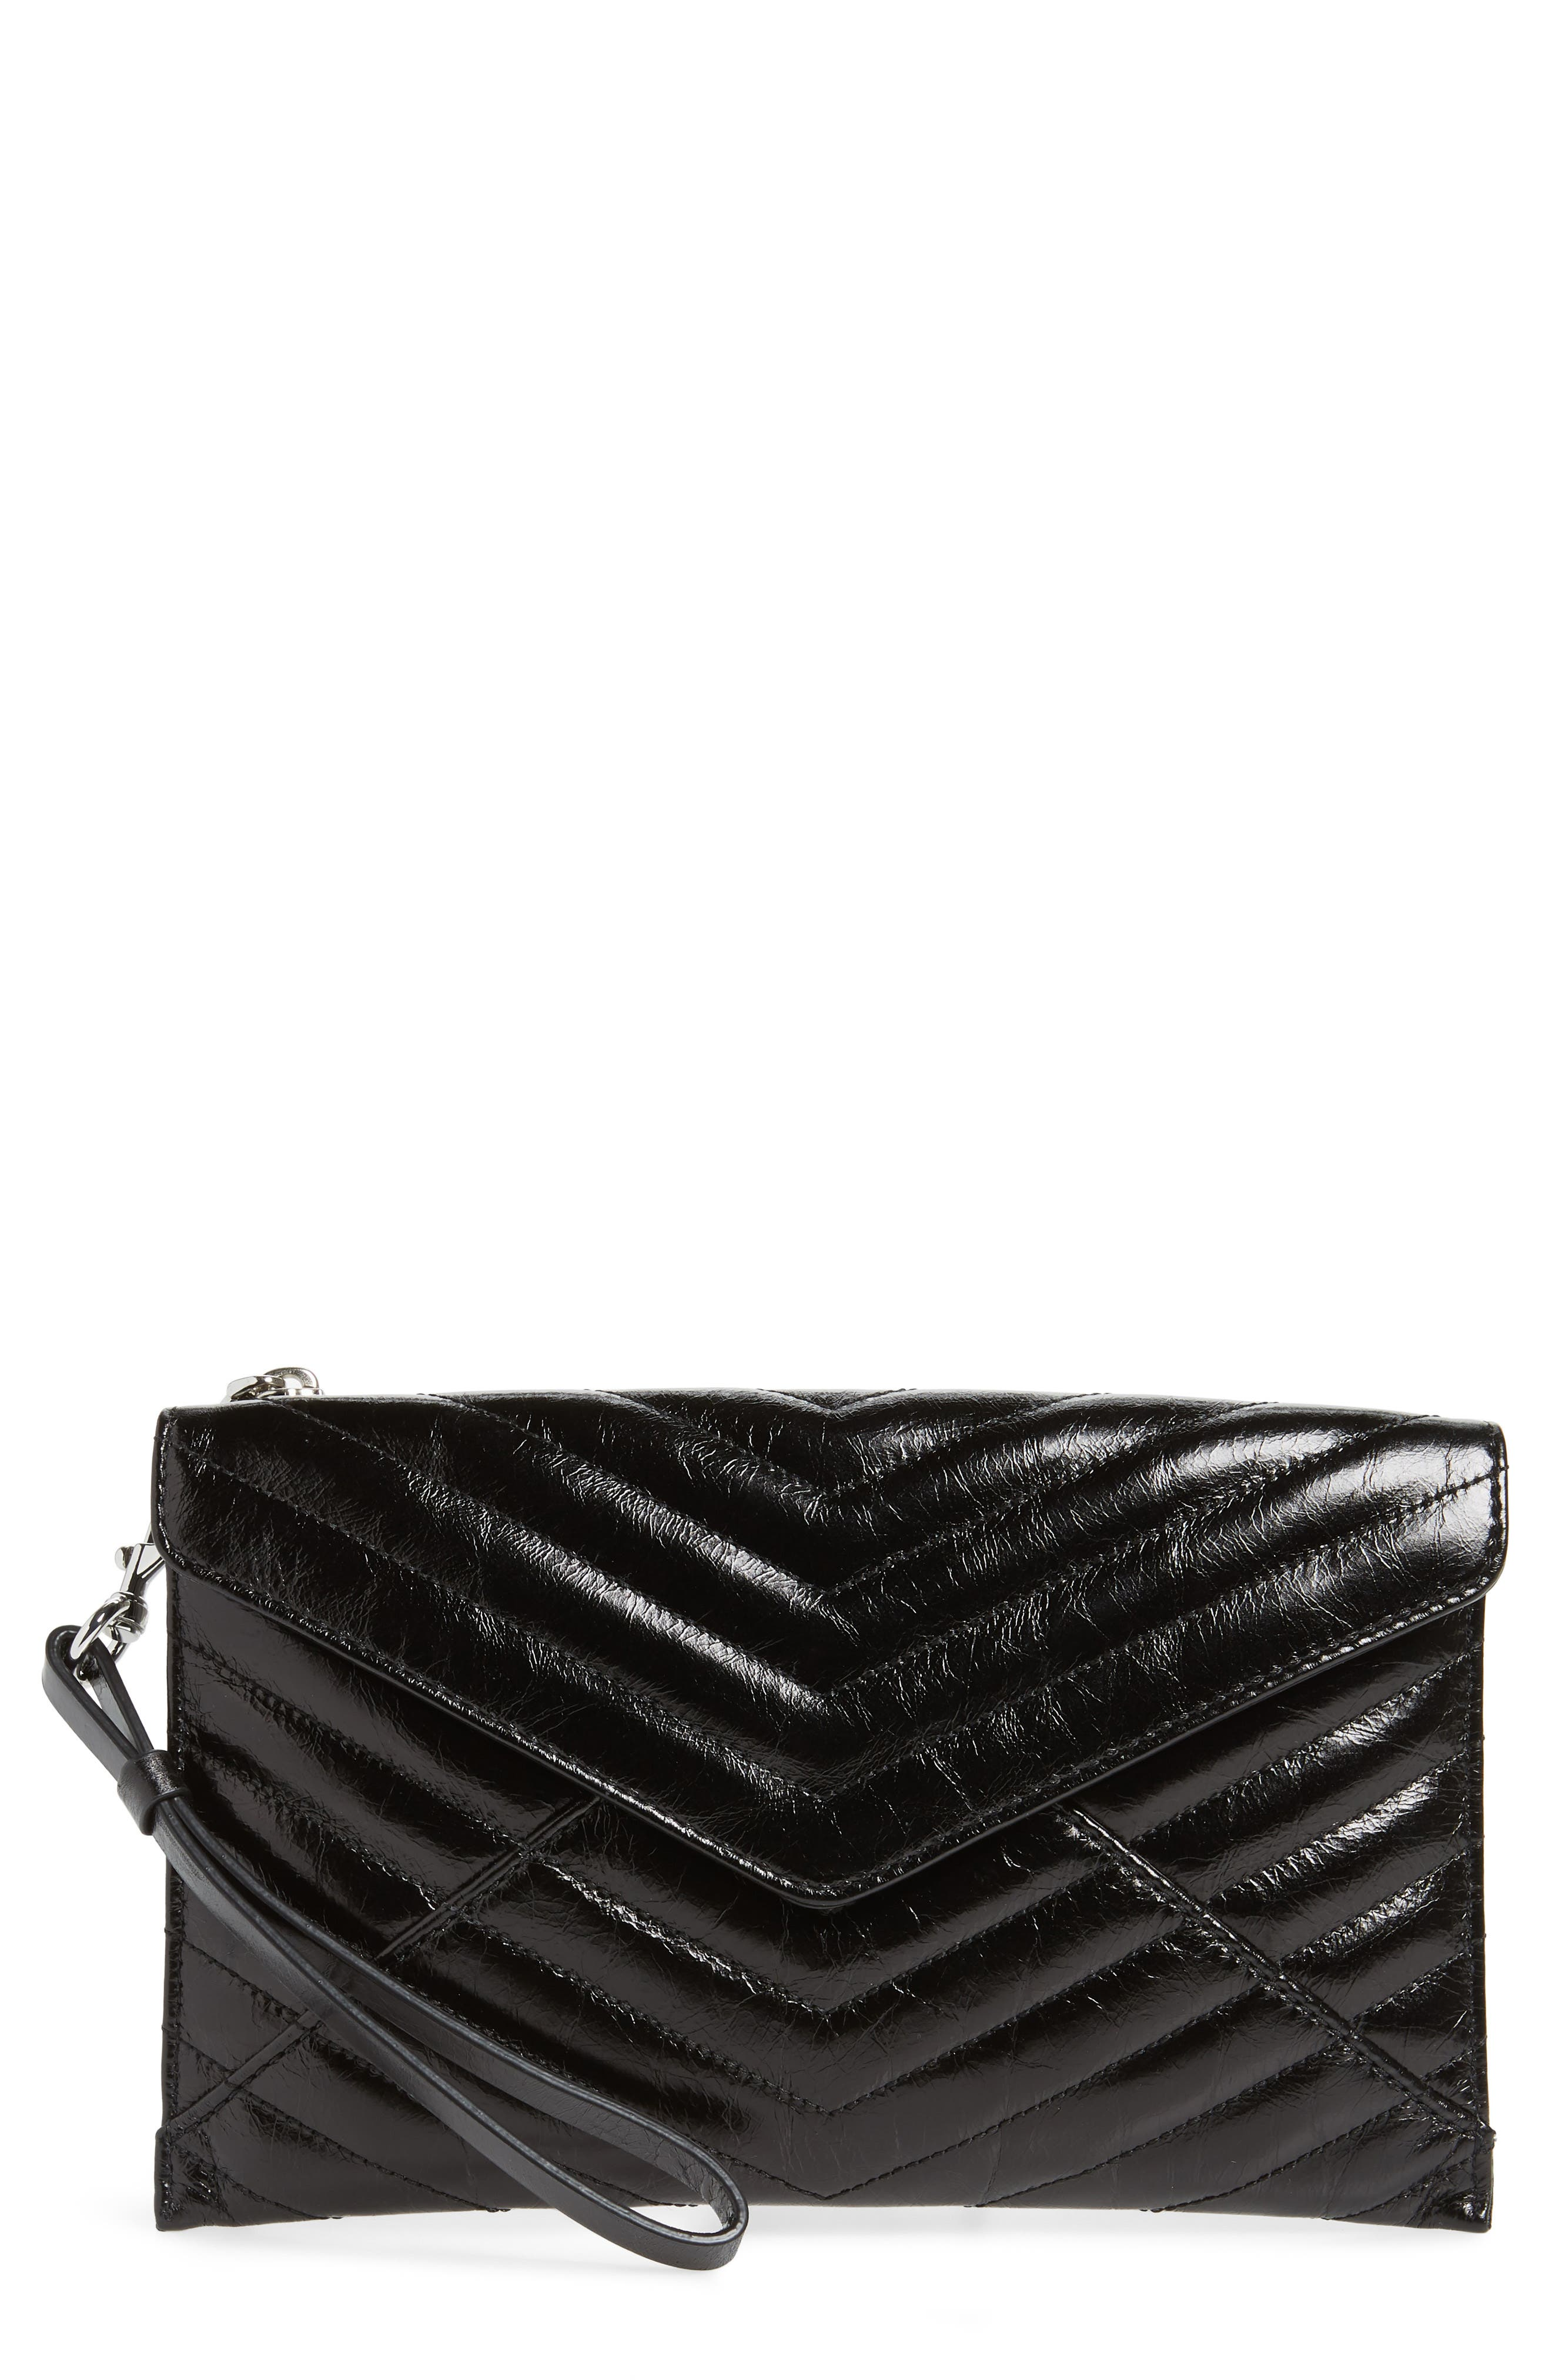 Leo Quilted Leather Clutch - Black